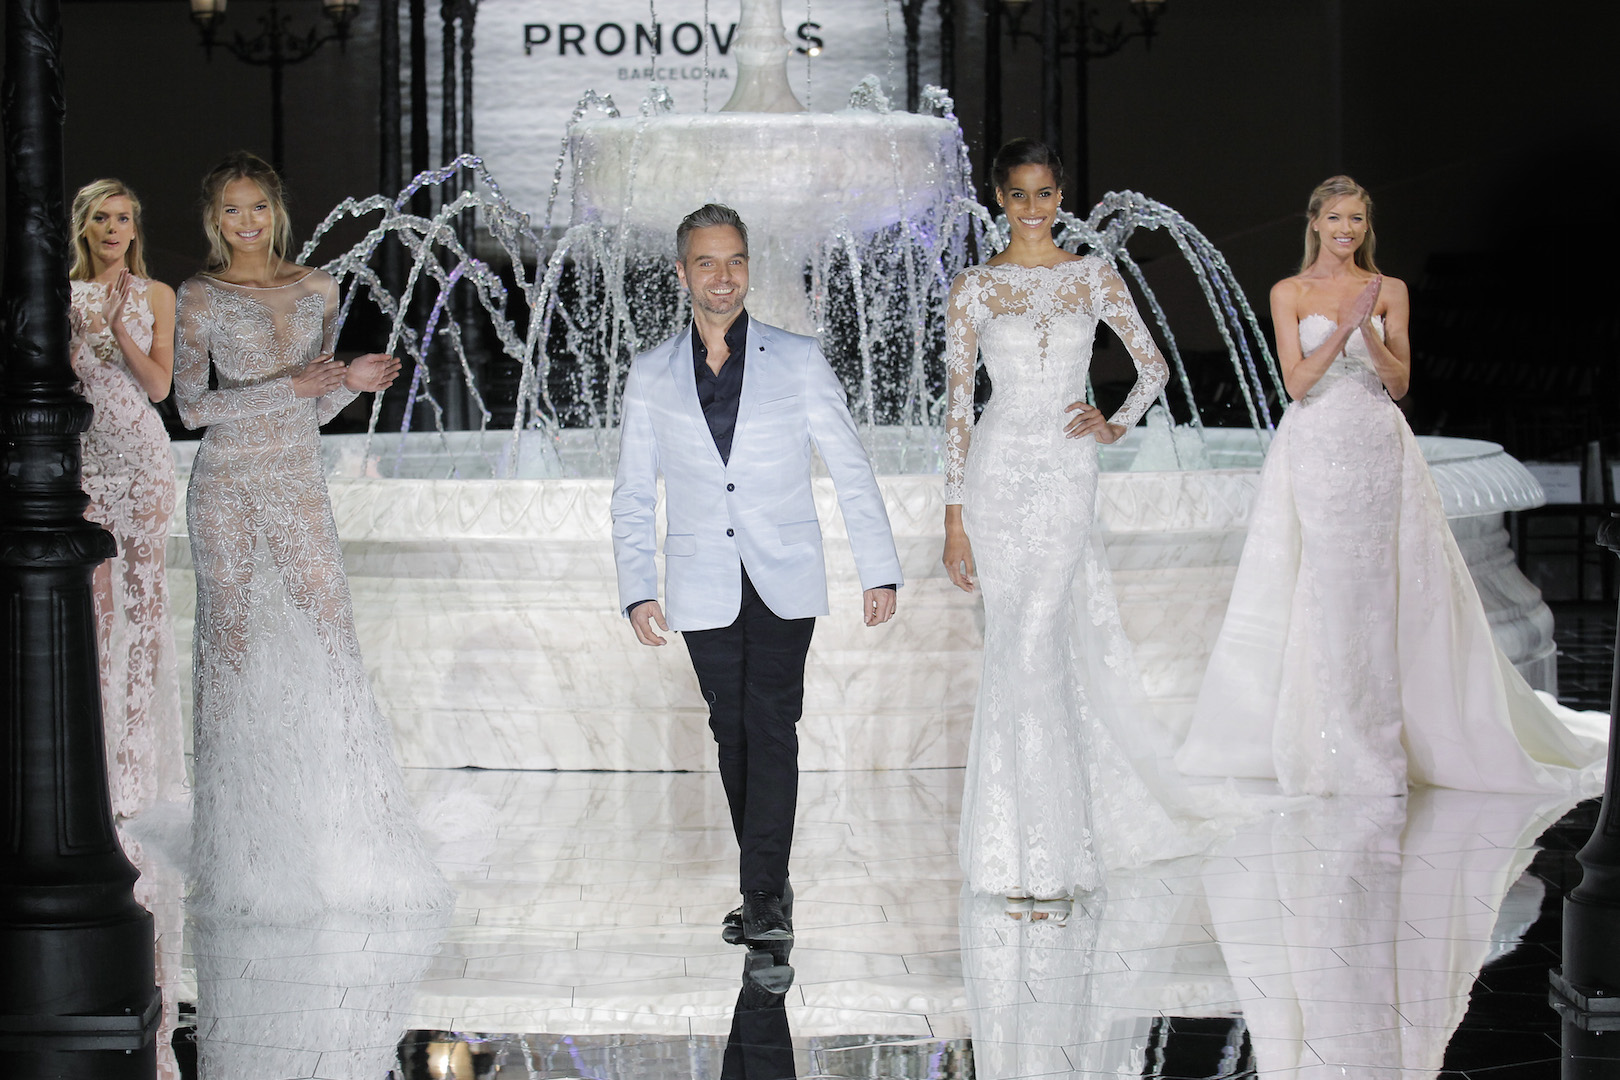 Pronovias Runway Show From Barcelona Bridal Week 2018: PRONOVIAS Presents It's Atelier 2018 Bridal Collection